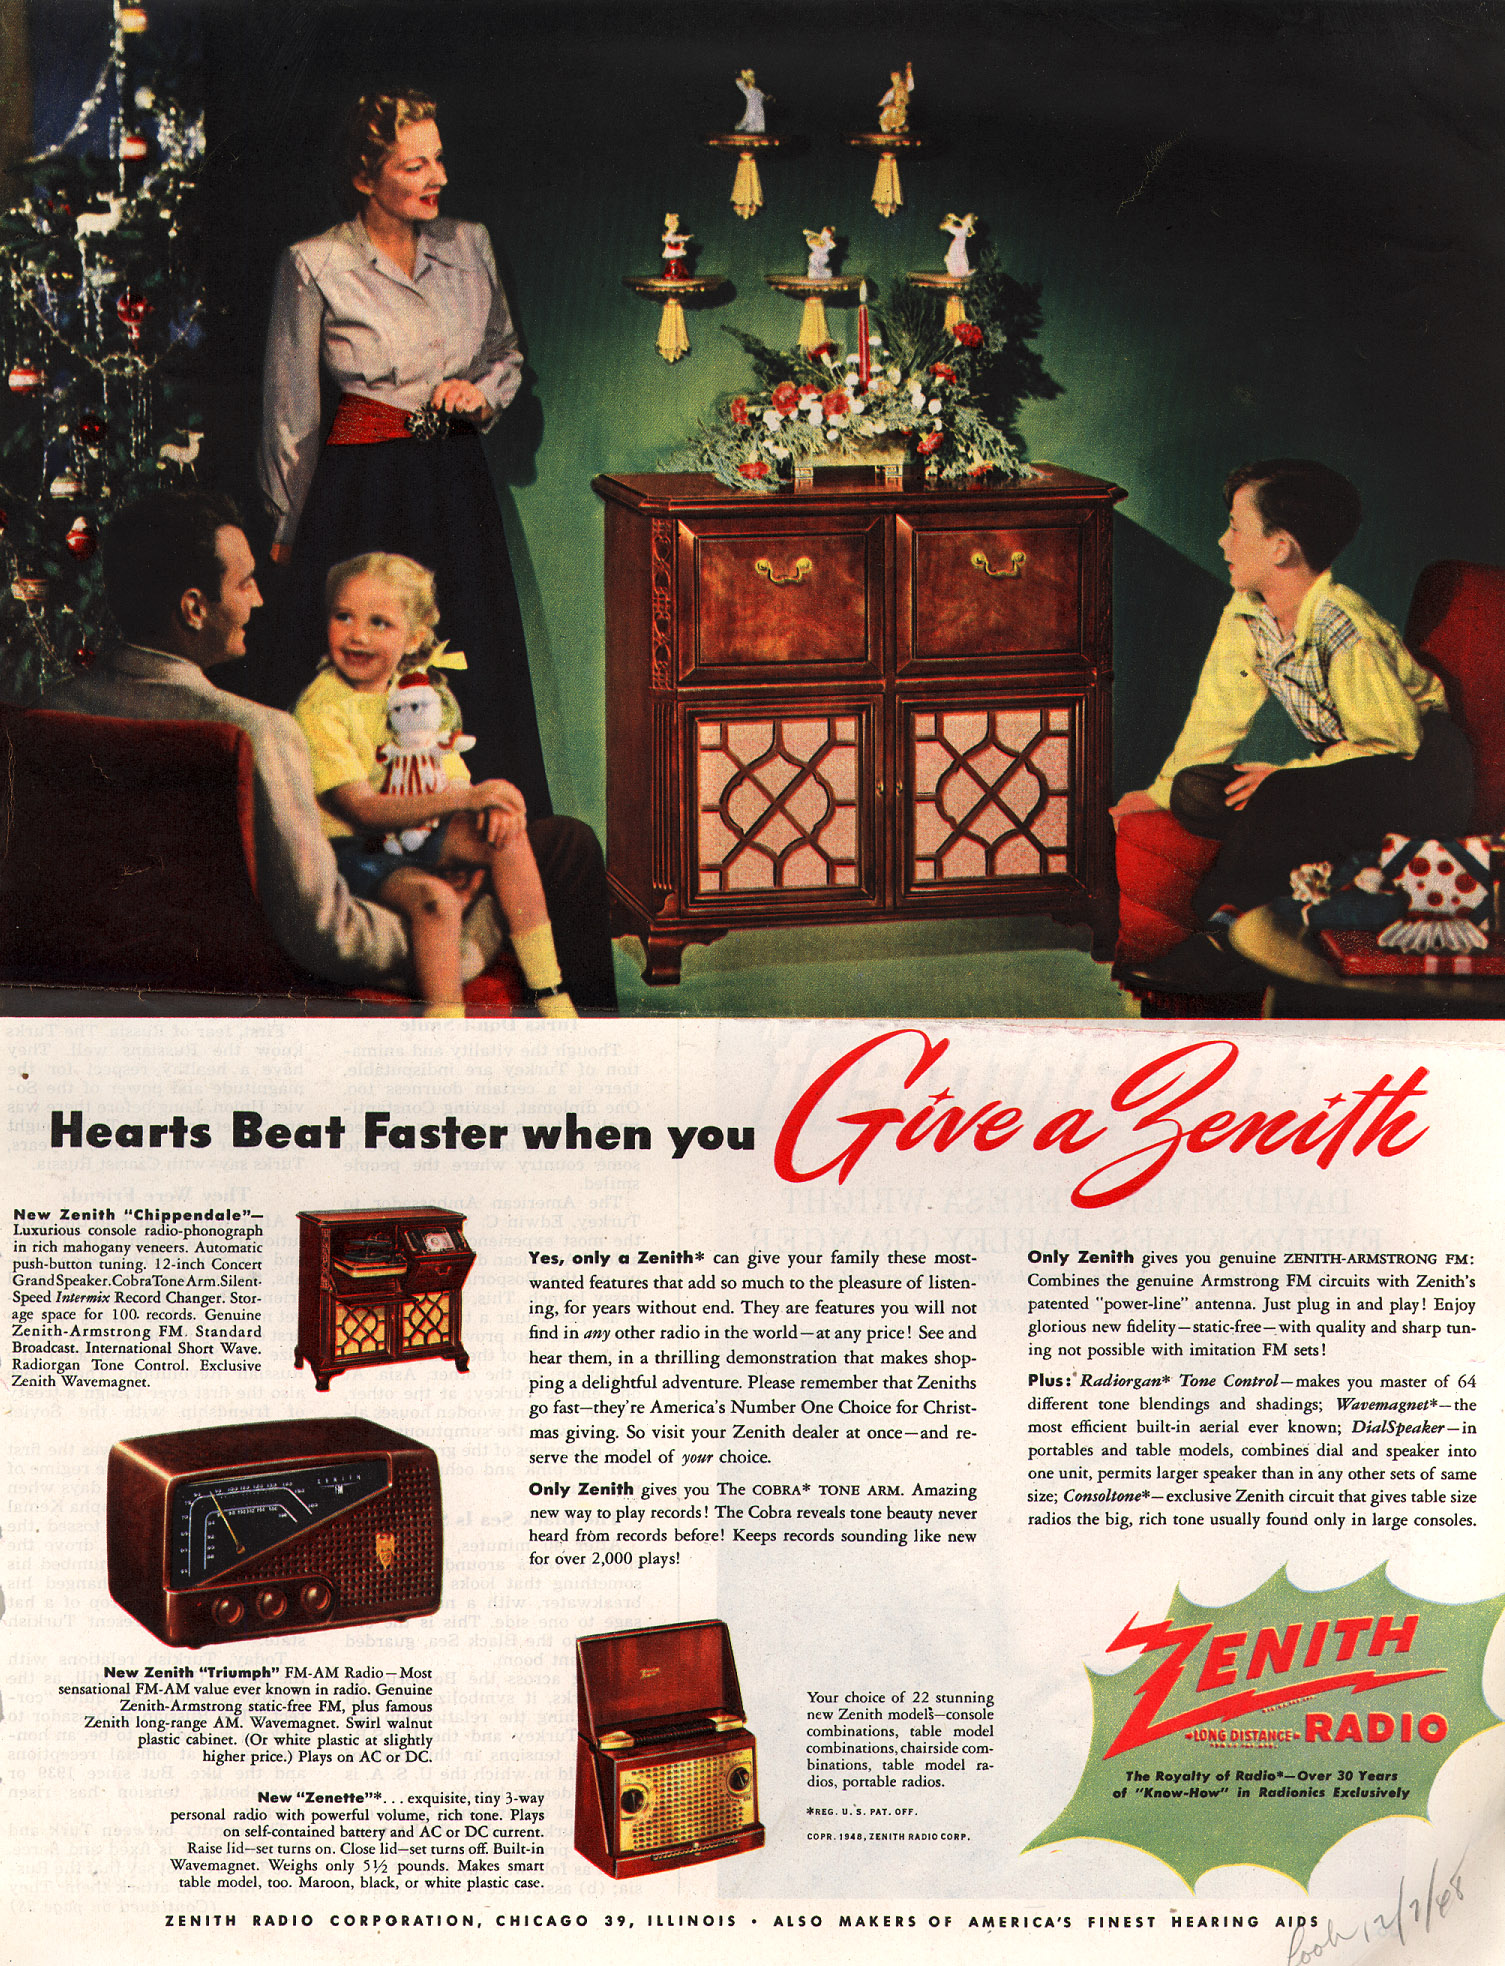 Hearts_Beat_Faster_when_you_Give_a_Zenith